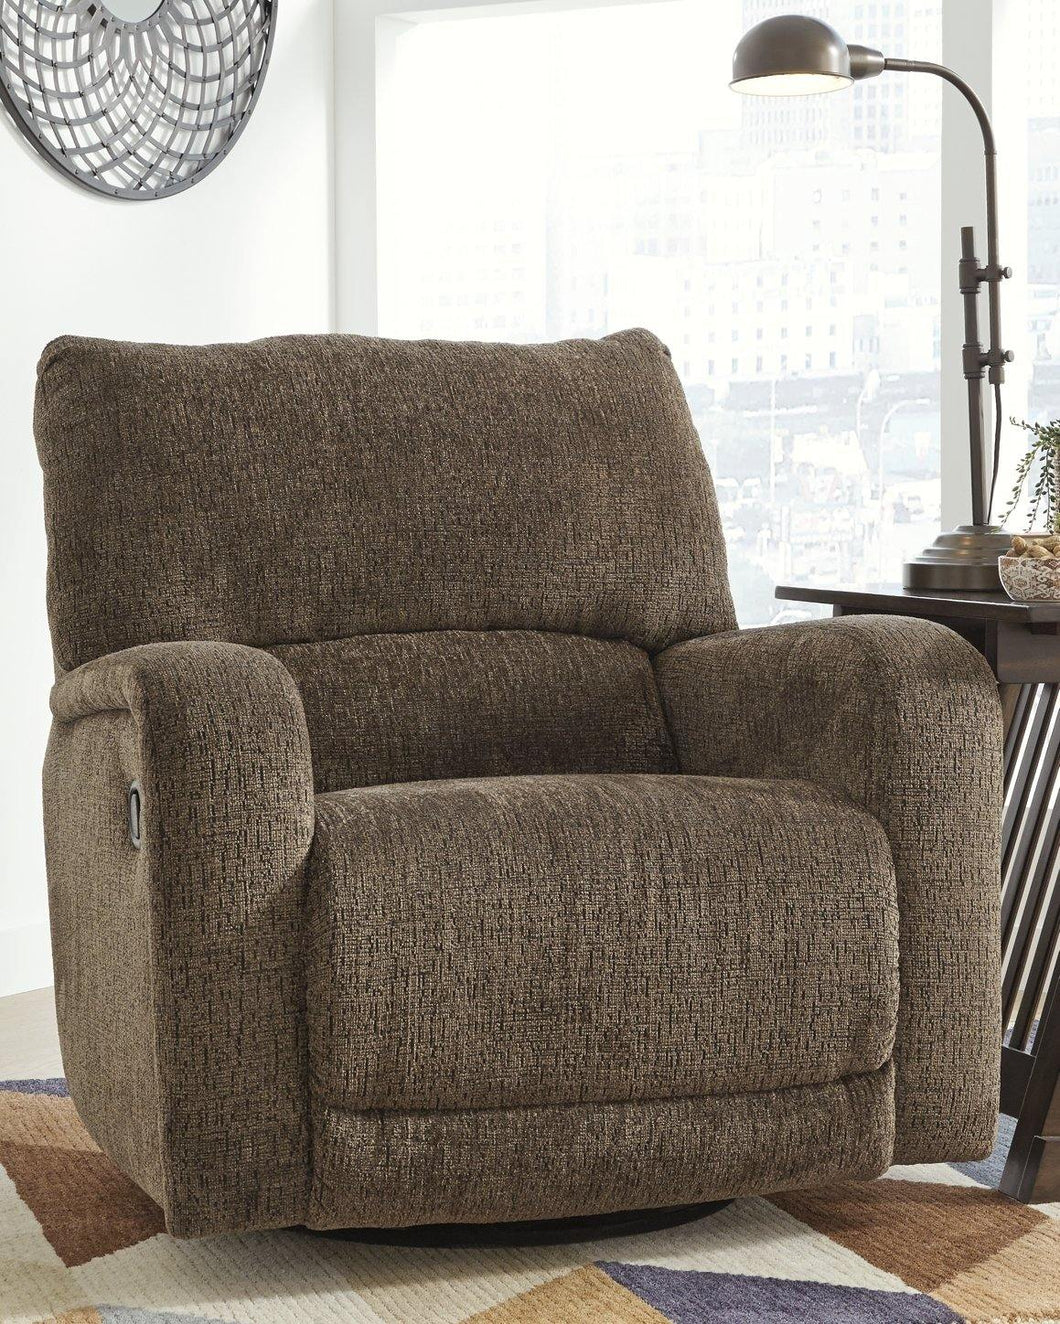 Wittlich Swivel Glider Recliner 5690261 By Ashley Furniture from sofafair